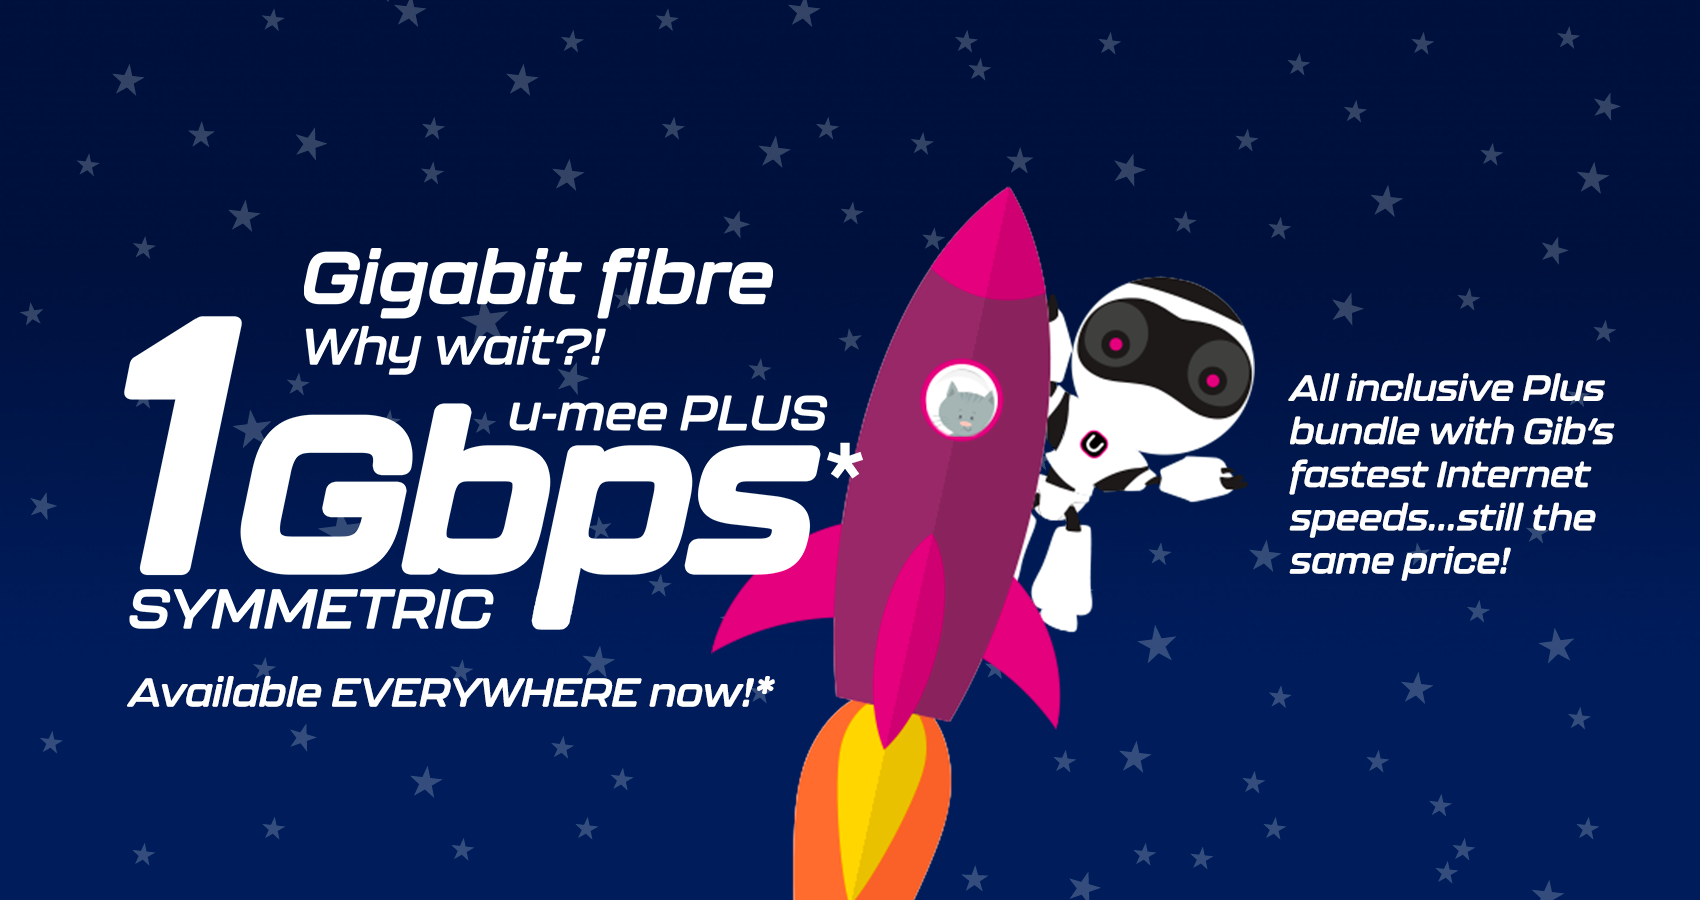 get u-mee Plus now